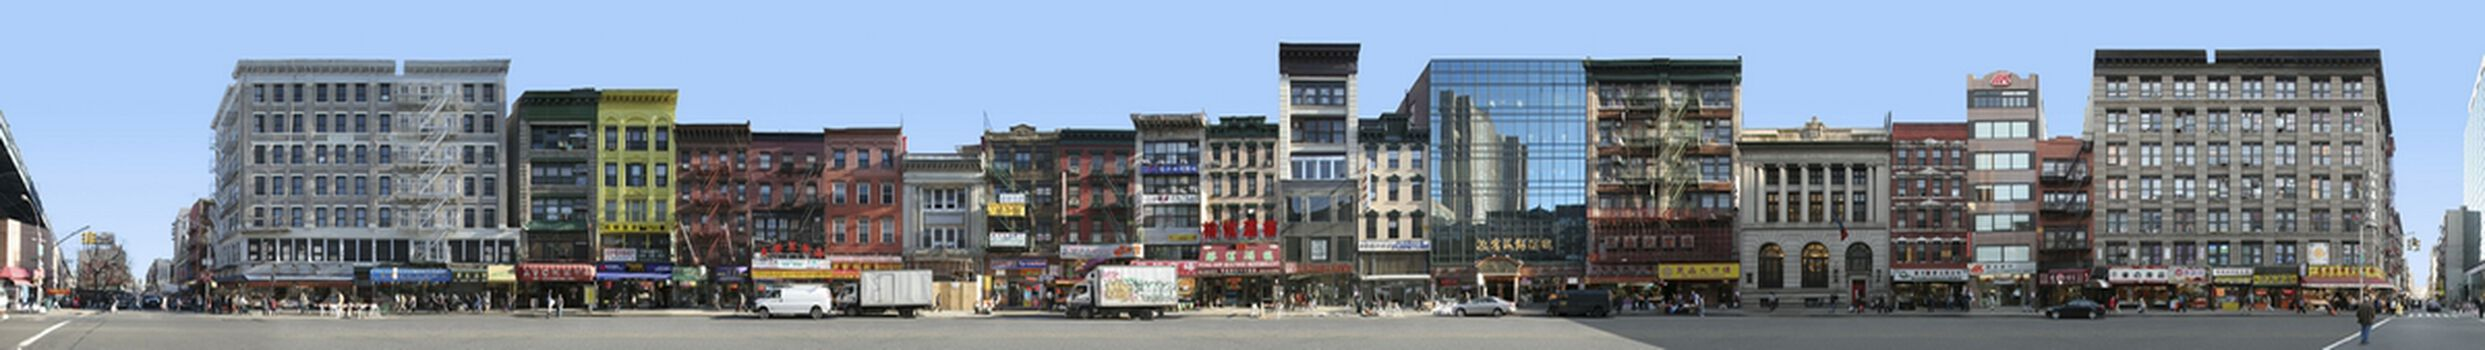 Photo Chinatown, South Of East Broadway - Cédric Mainguy